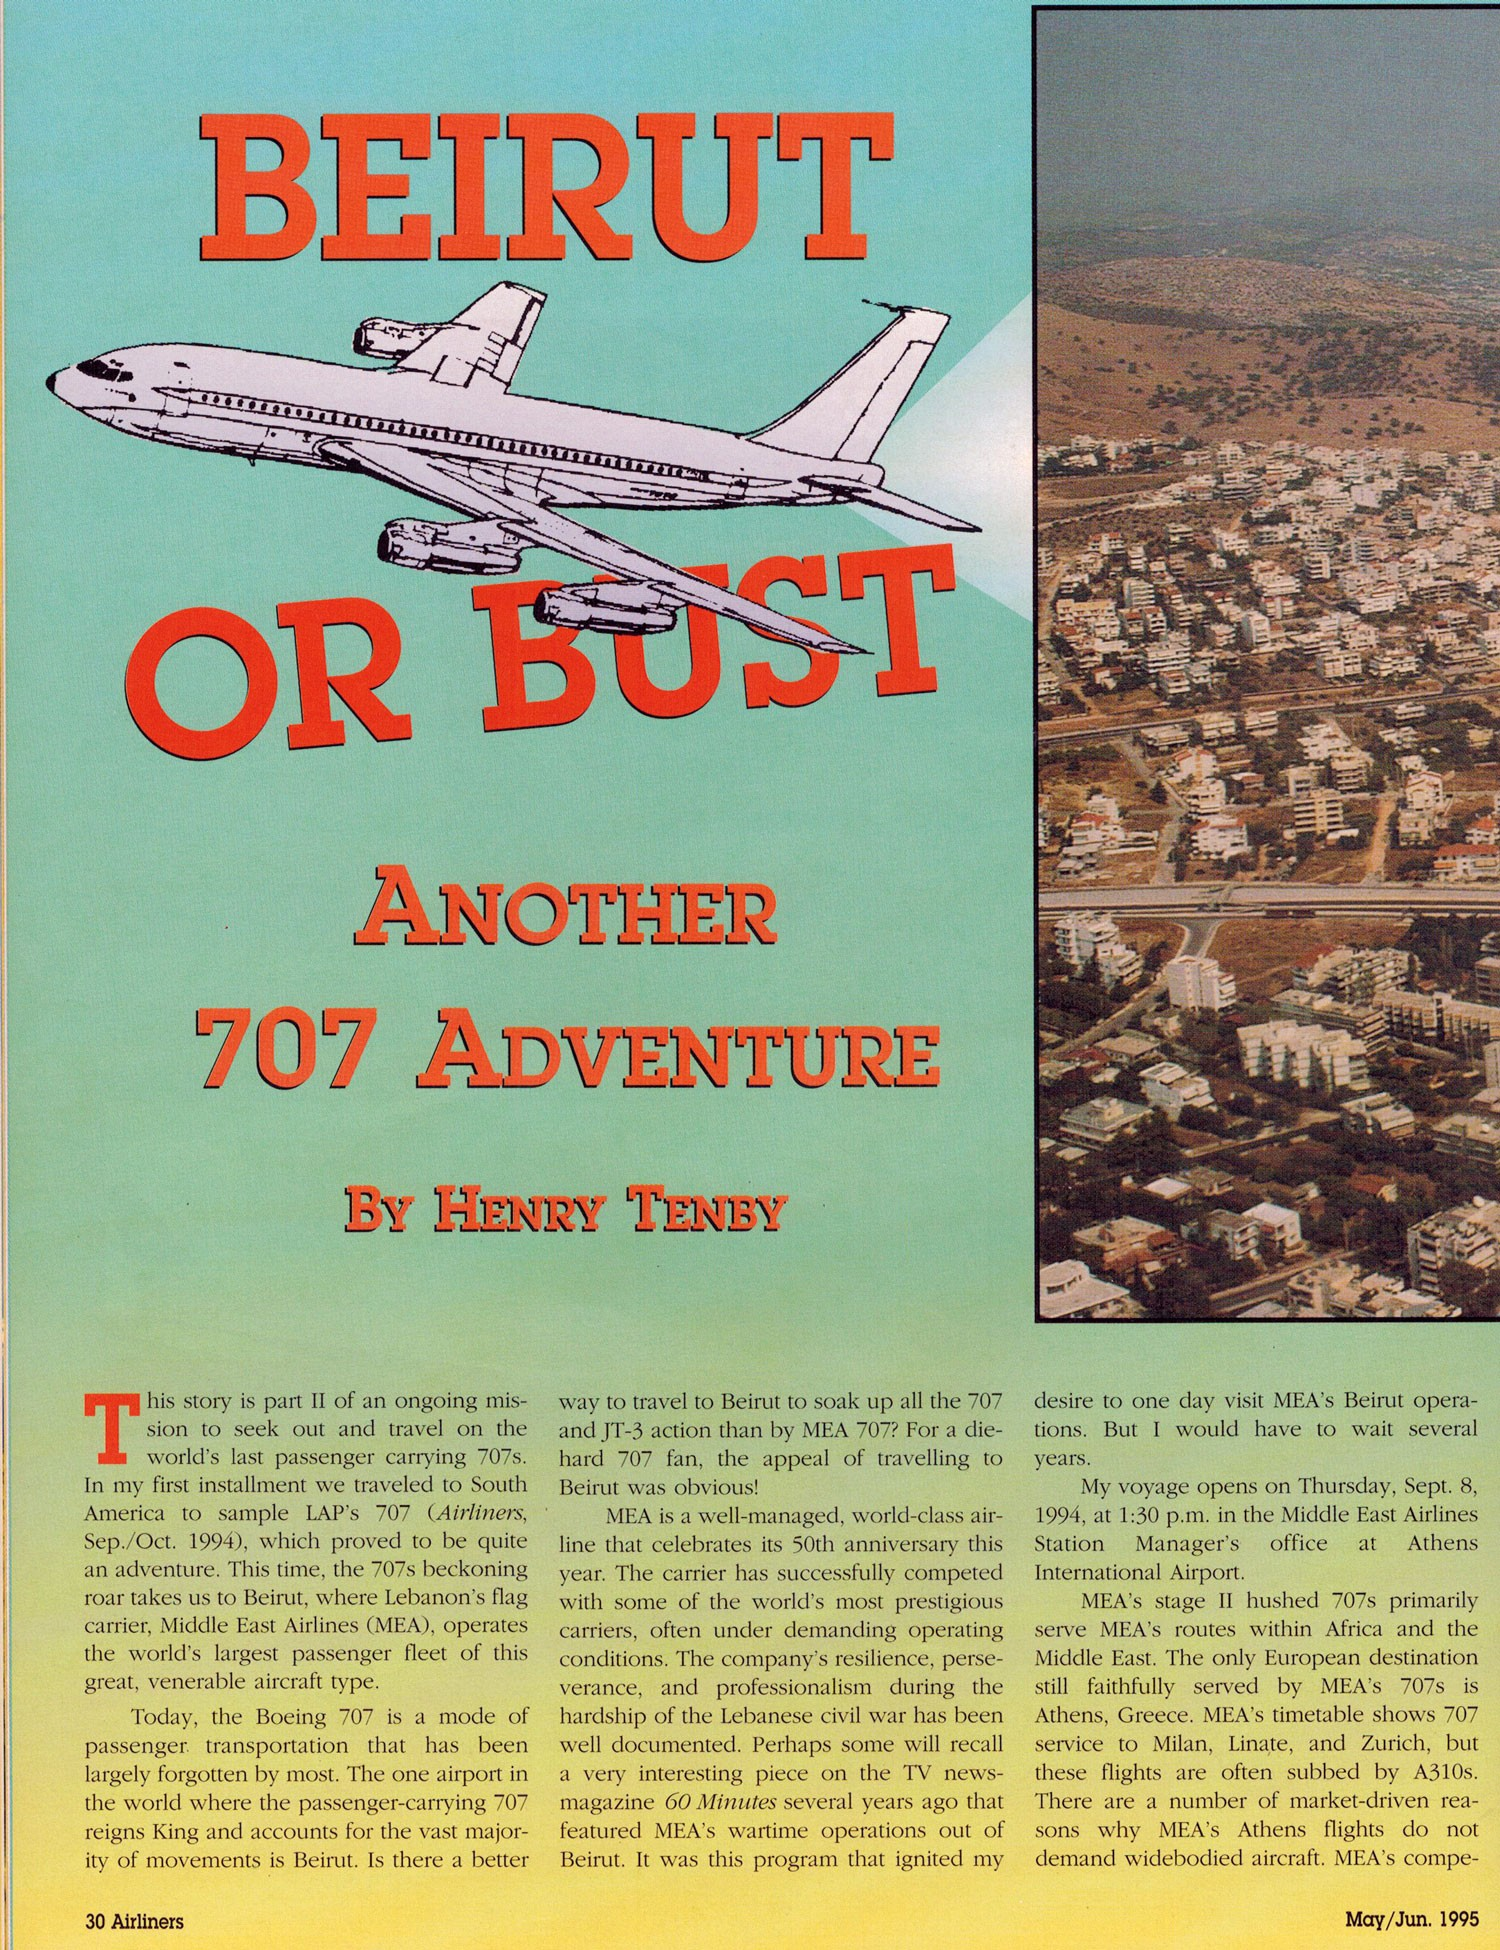 Beirut or Bust Another 707 Adventure by Henry Tenby